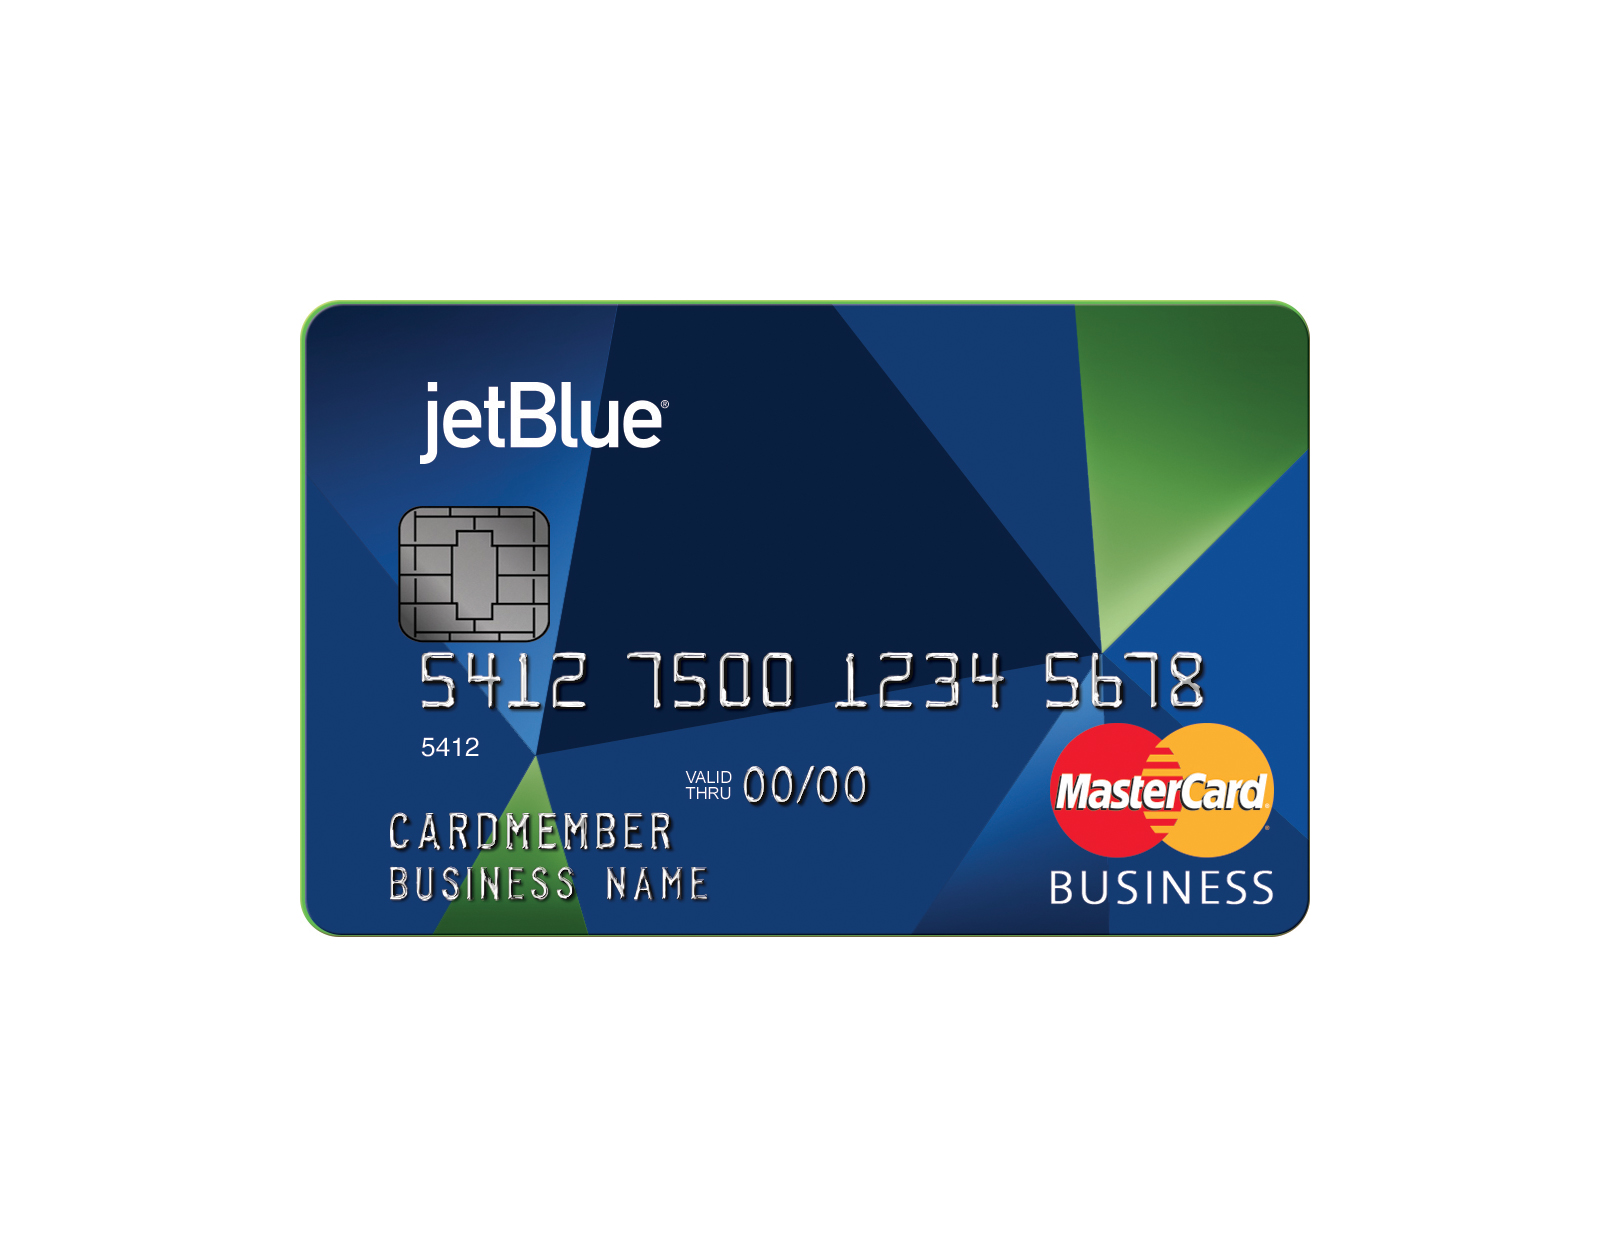 The New JetBlue Business Card